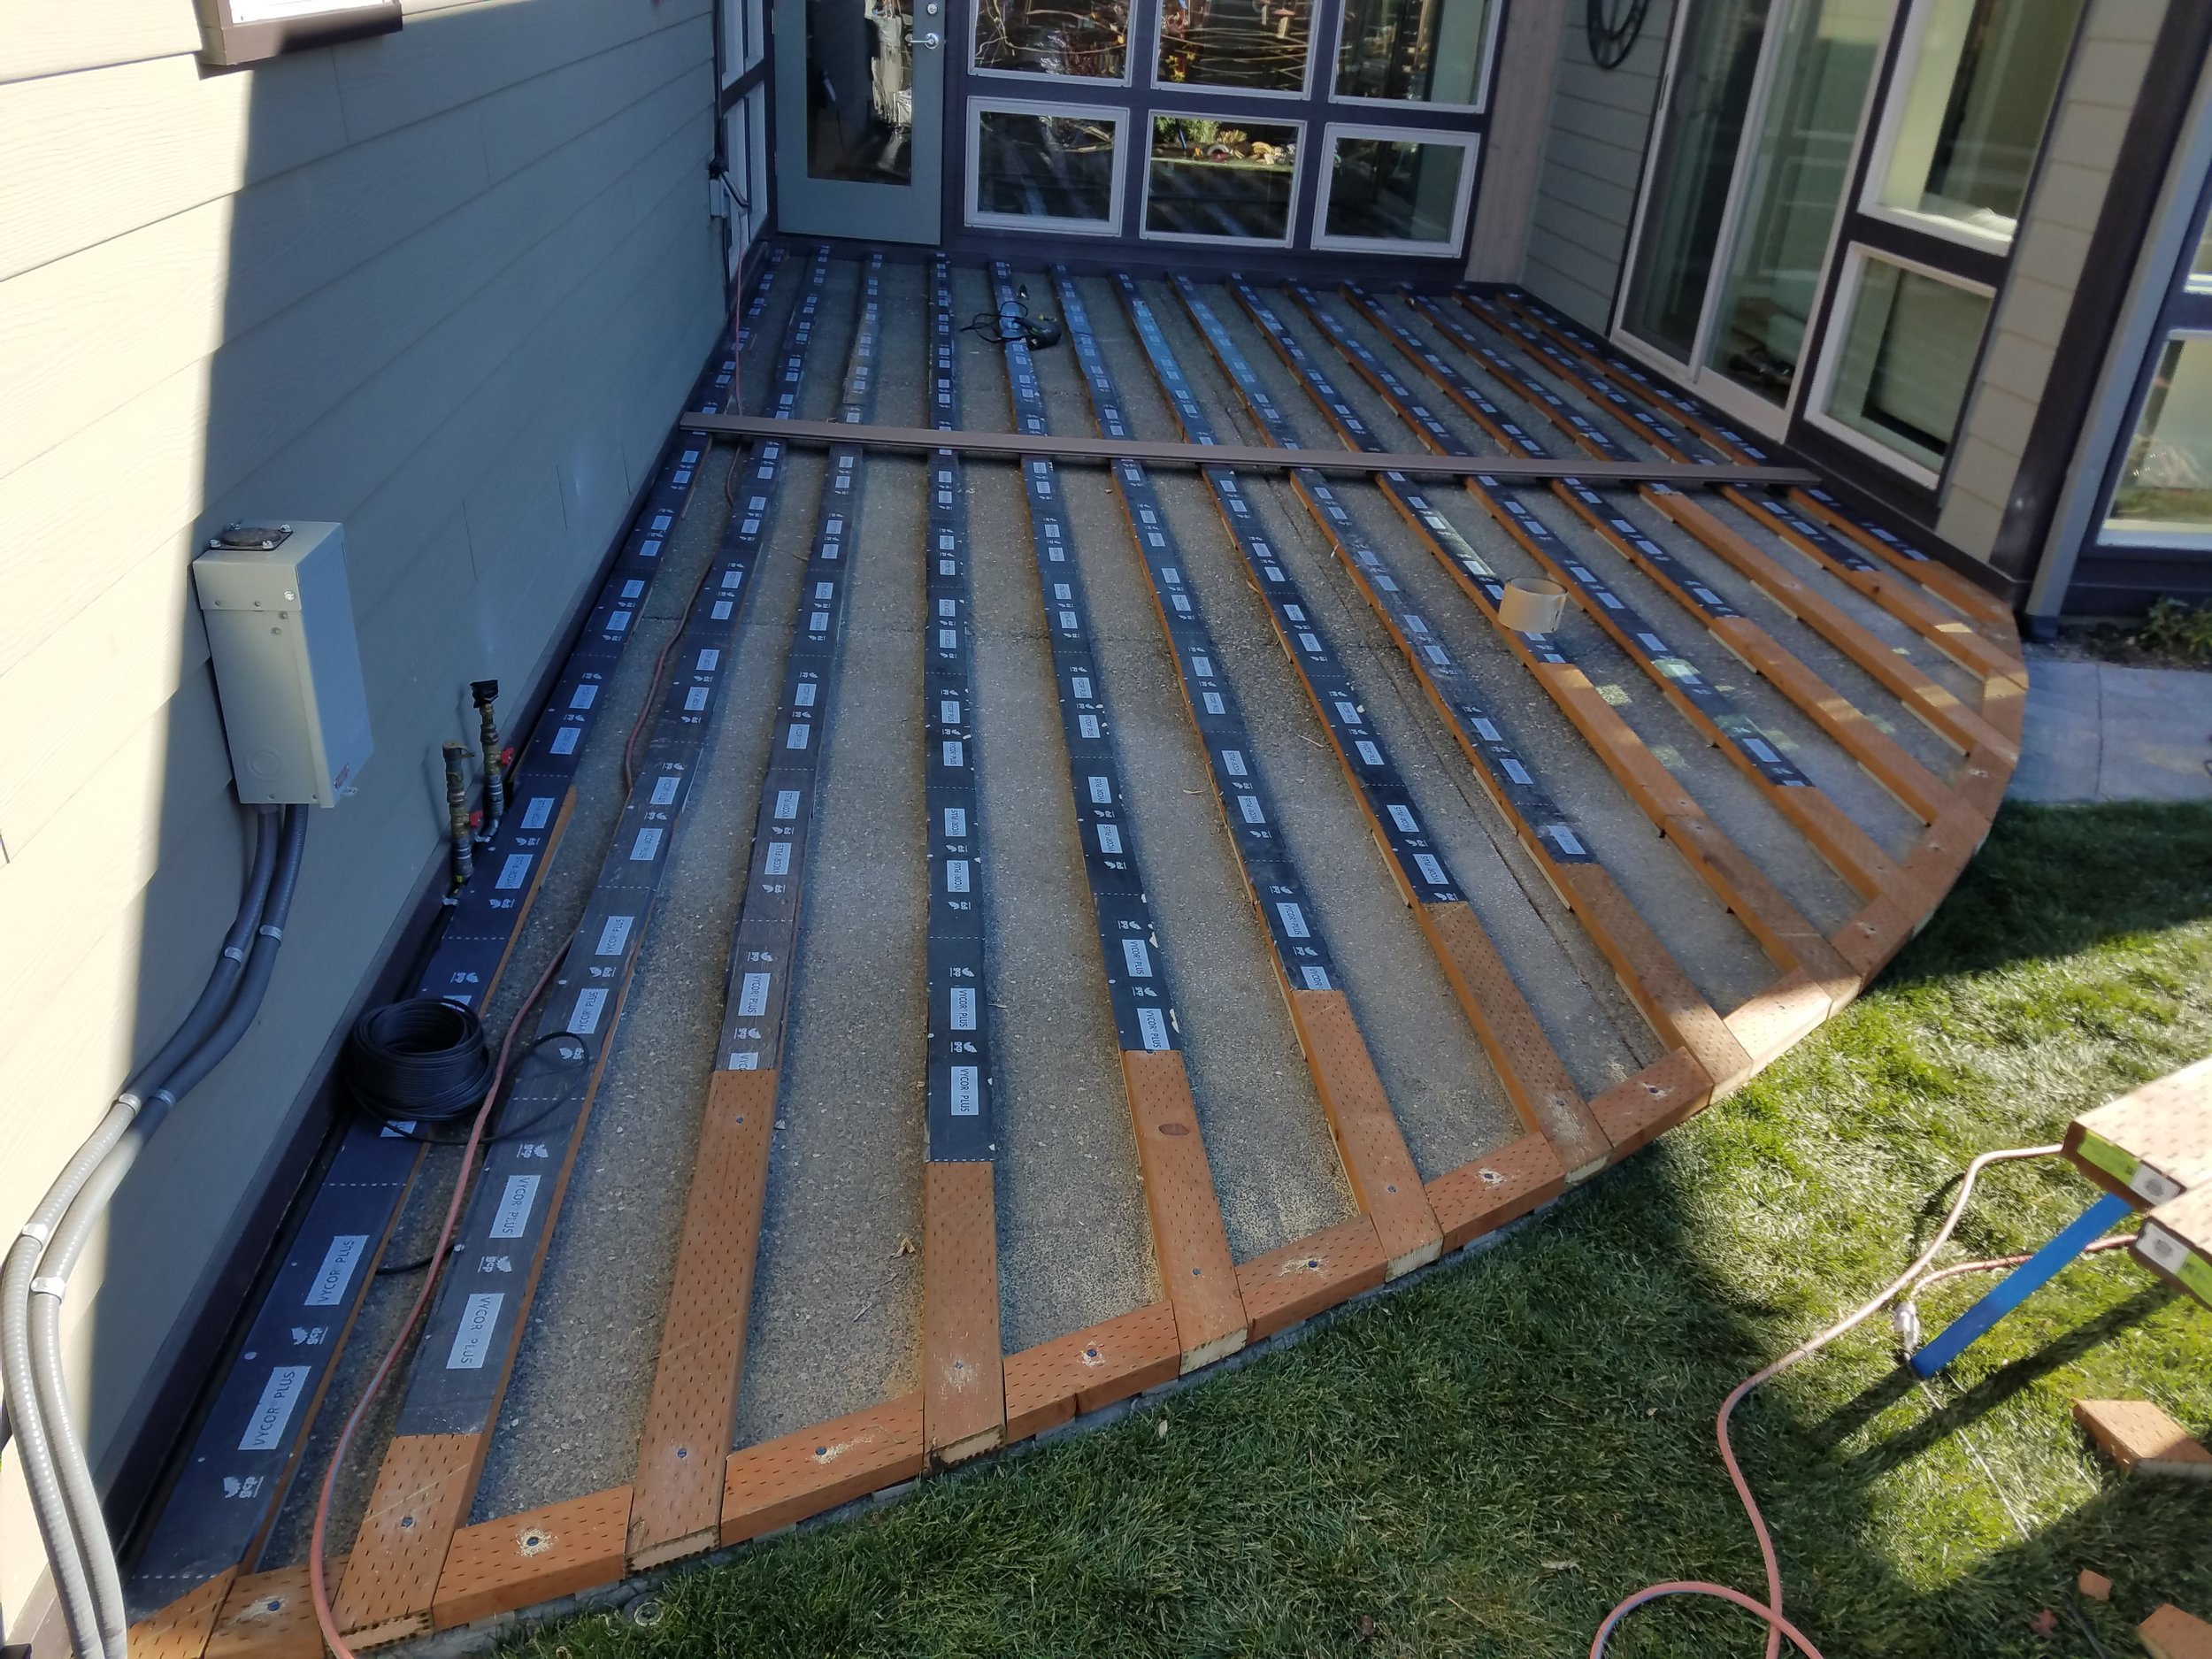 Flashing Tape - A deck built using a wooden frame will benefit from the installation of joist flashing: a special tape that is applied across the top edge of the deck joists and/or beams. Its function is to help protect flat wood surfaces against future frame damage caused by moisture. The addition of flashing tape will surely add years of life to any deck frame.